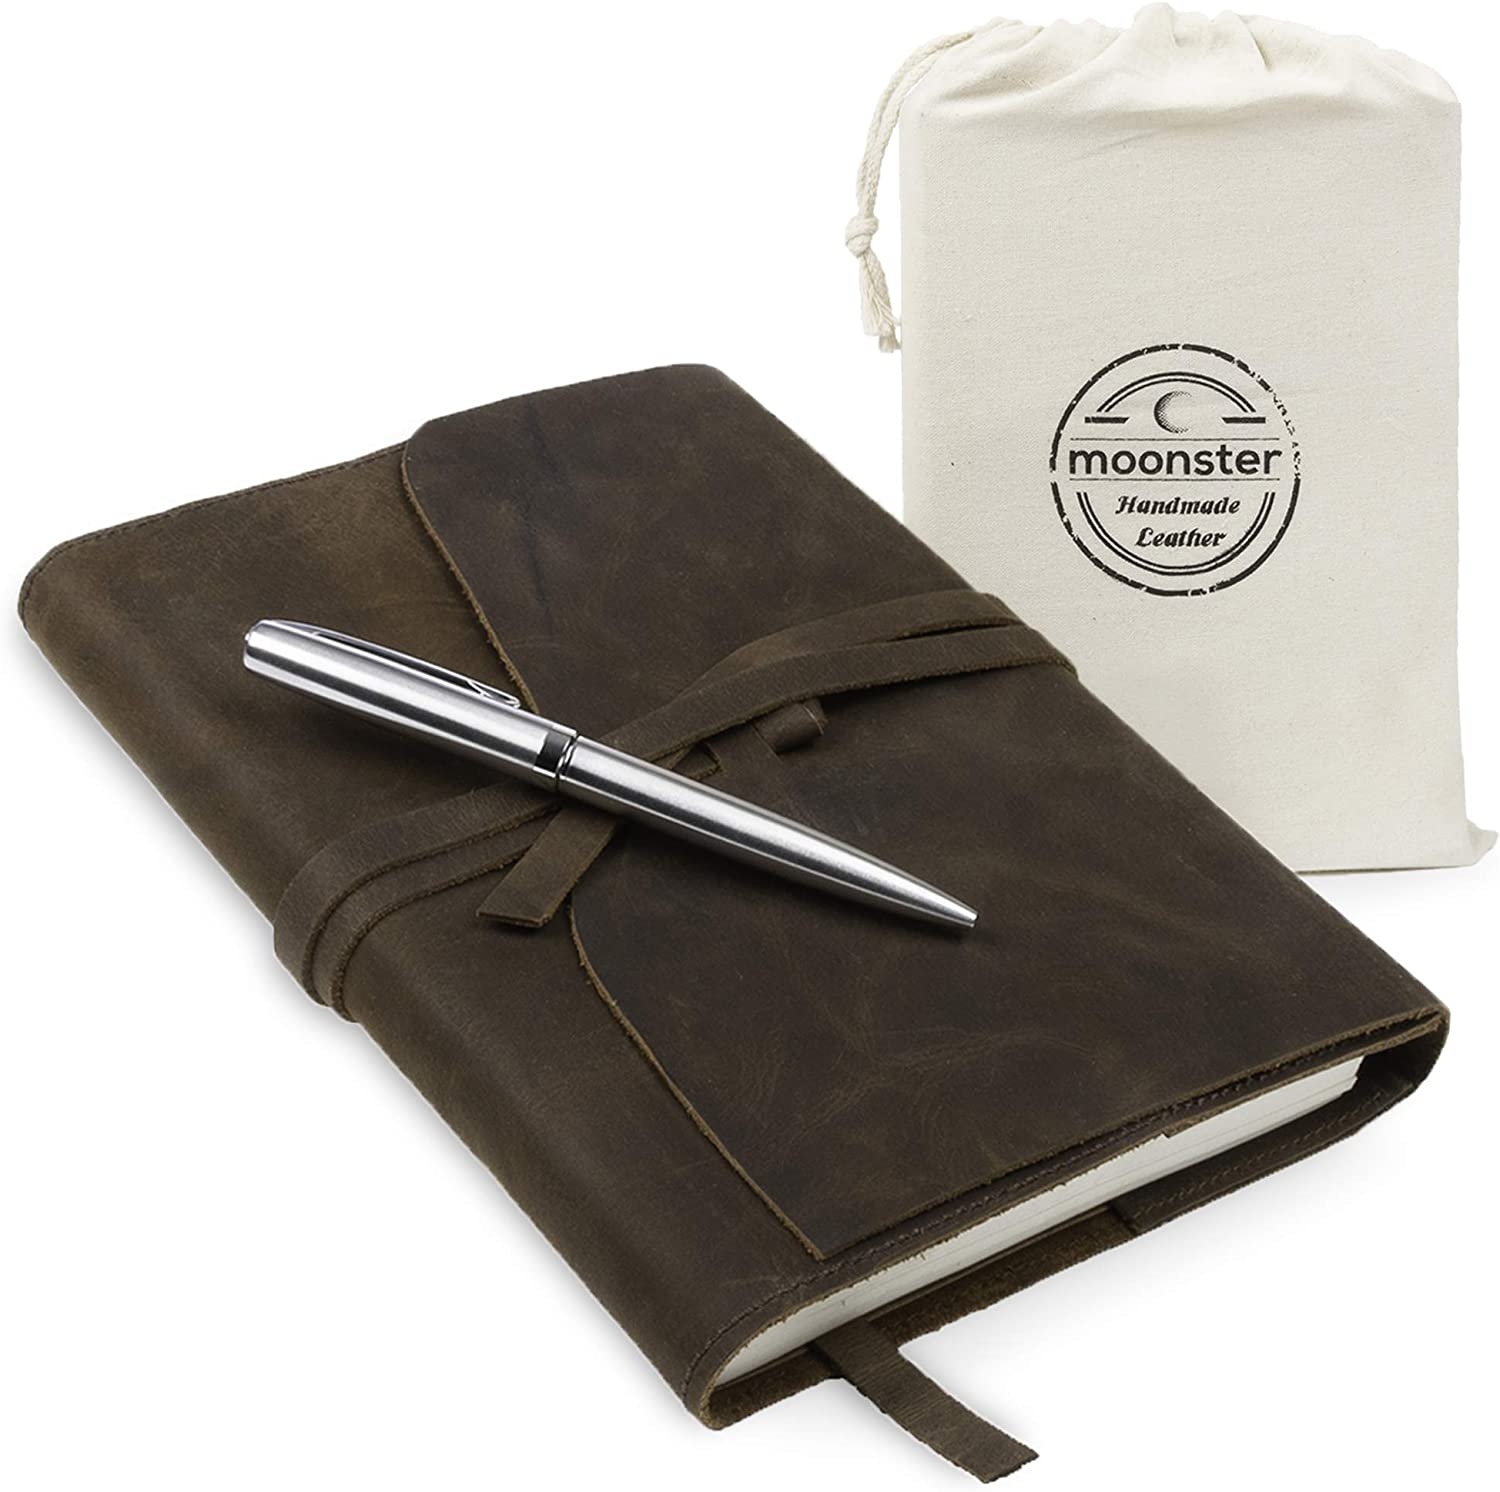 Refillable leather travellers journal - ideal travellers gift